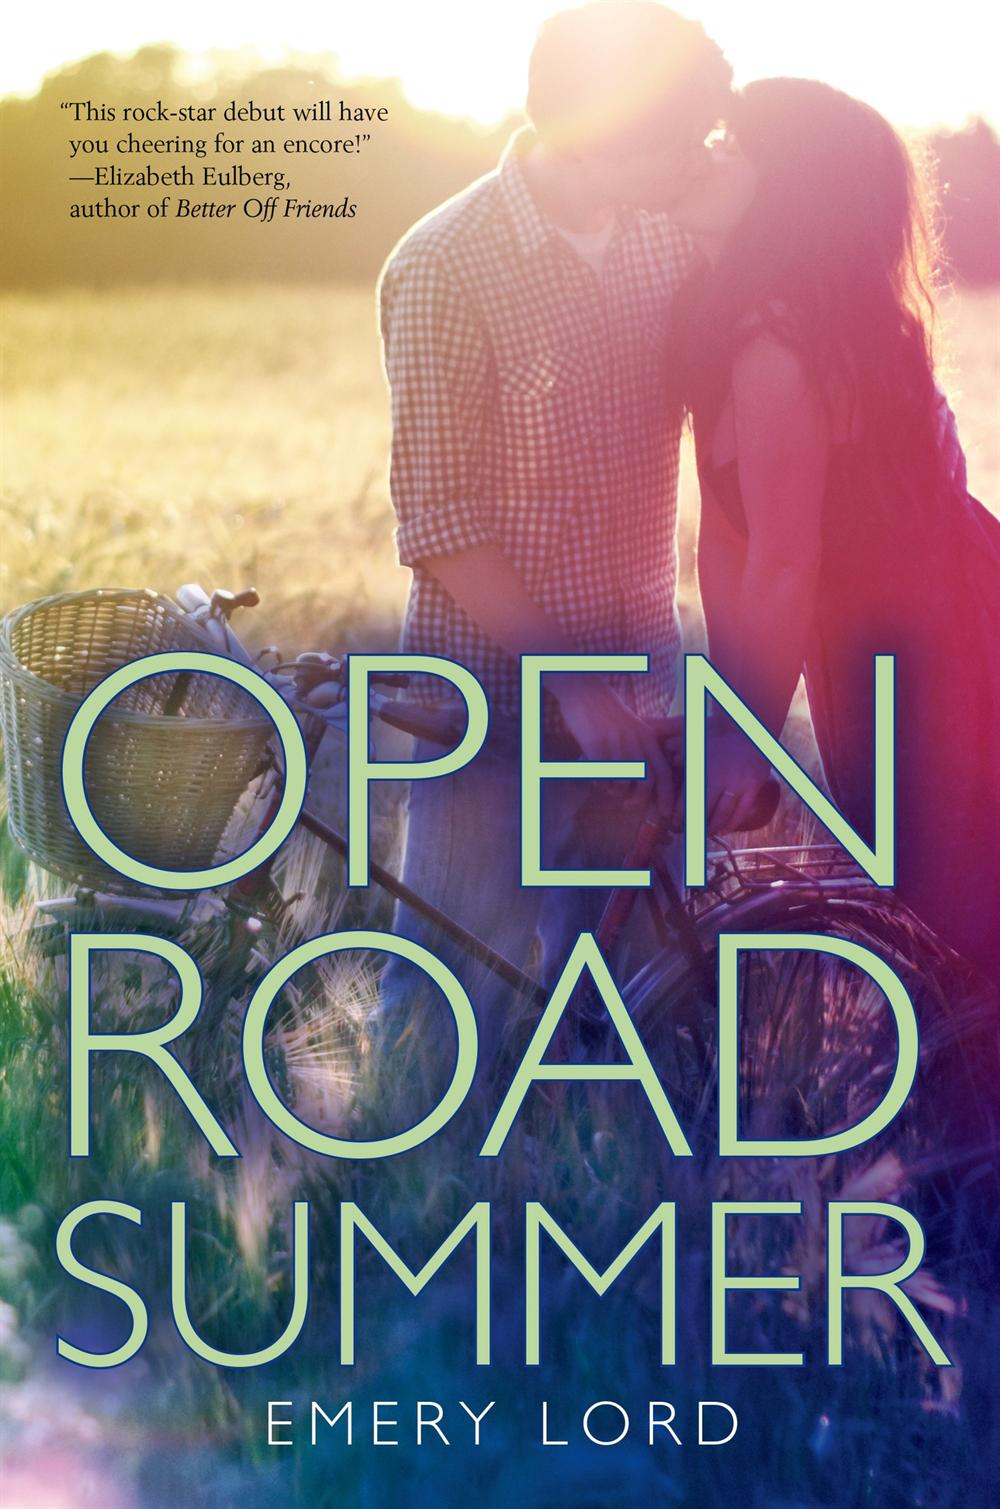 http://thereadingdate.com/wp-content/uploads/sites/65/2014/04/open-road-summer.jpg?w=468